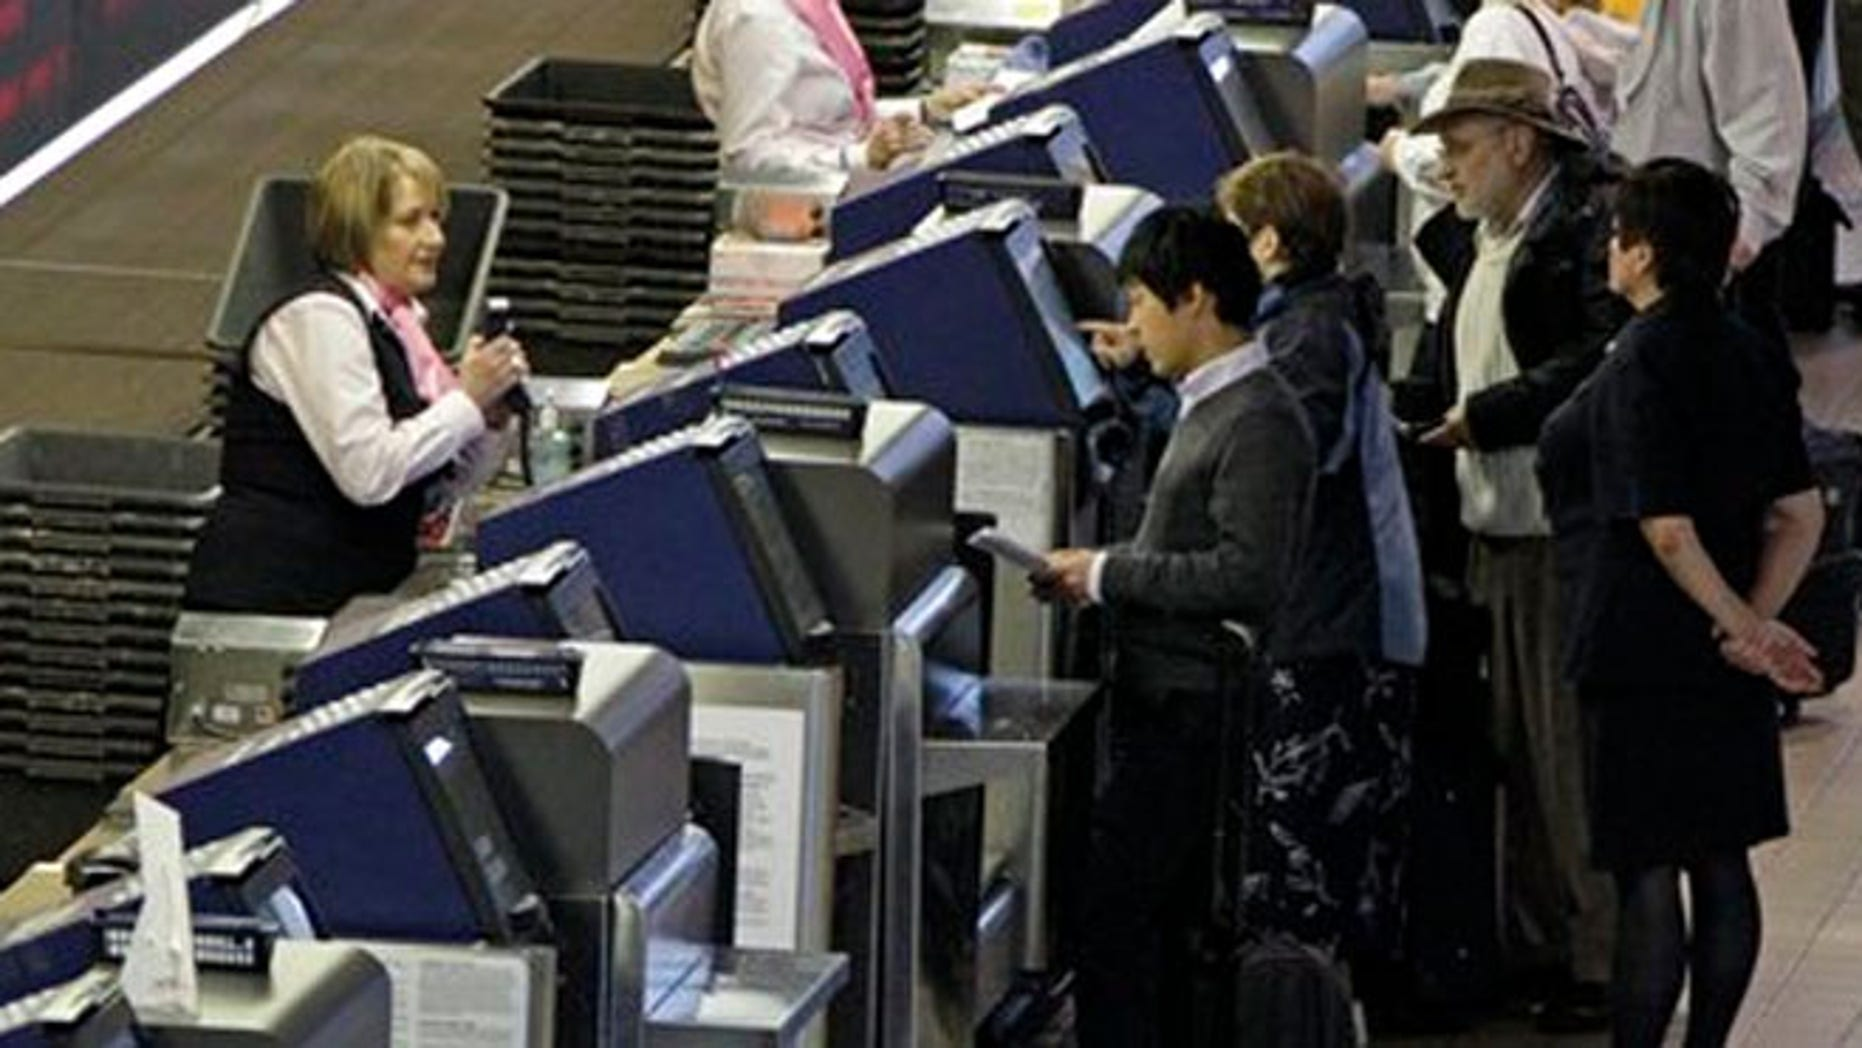 Oct. 31, 2012: Passengers check in for their flights at the US Airways ticket counter at Pittsburgh International Airport in Imperial, Pa, Wednesday.